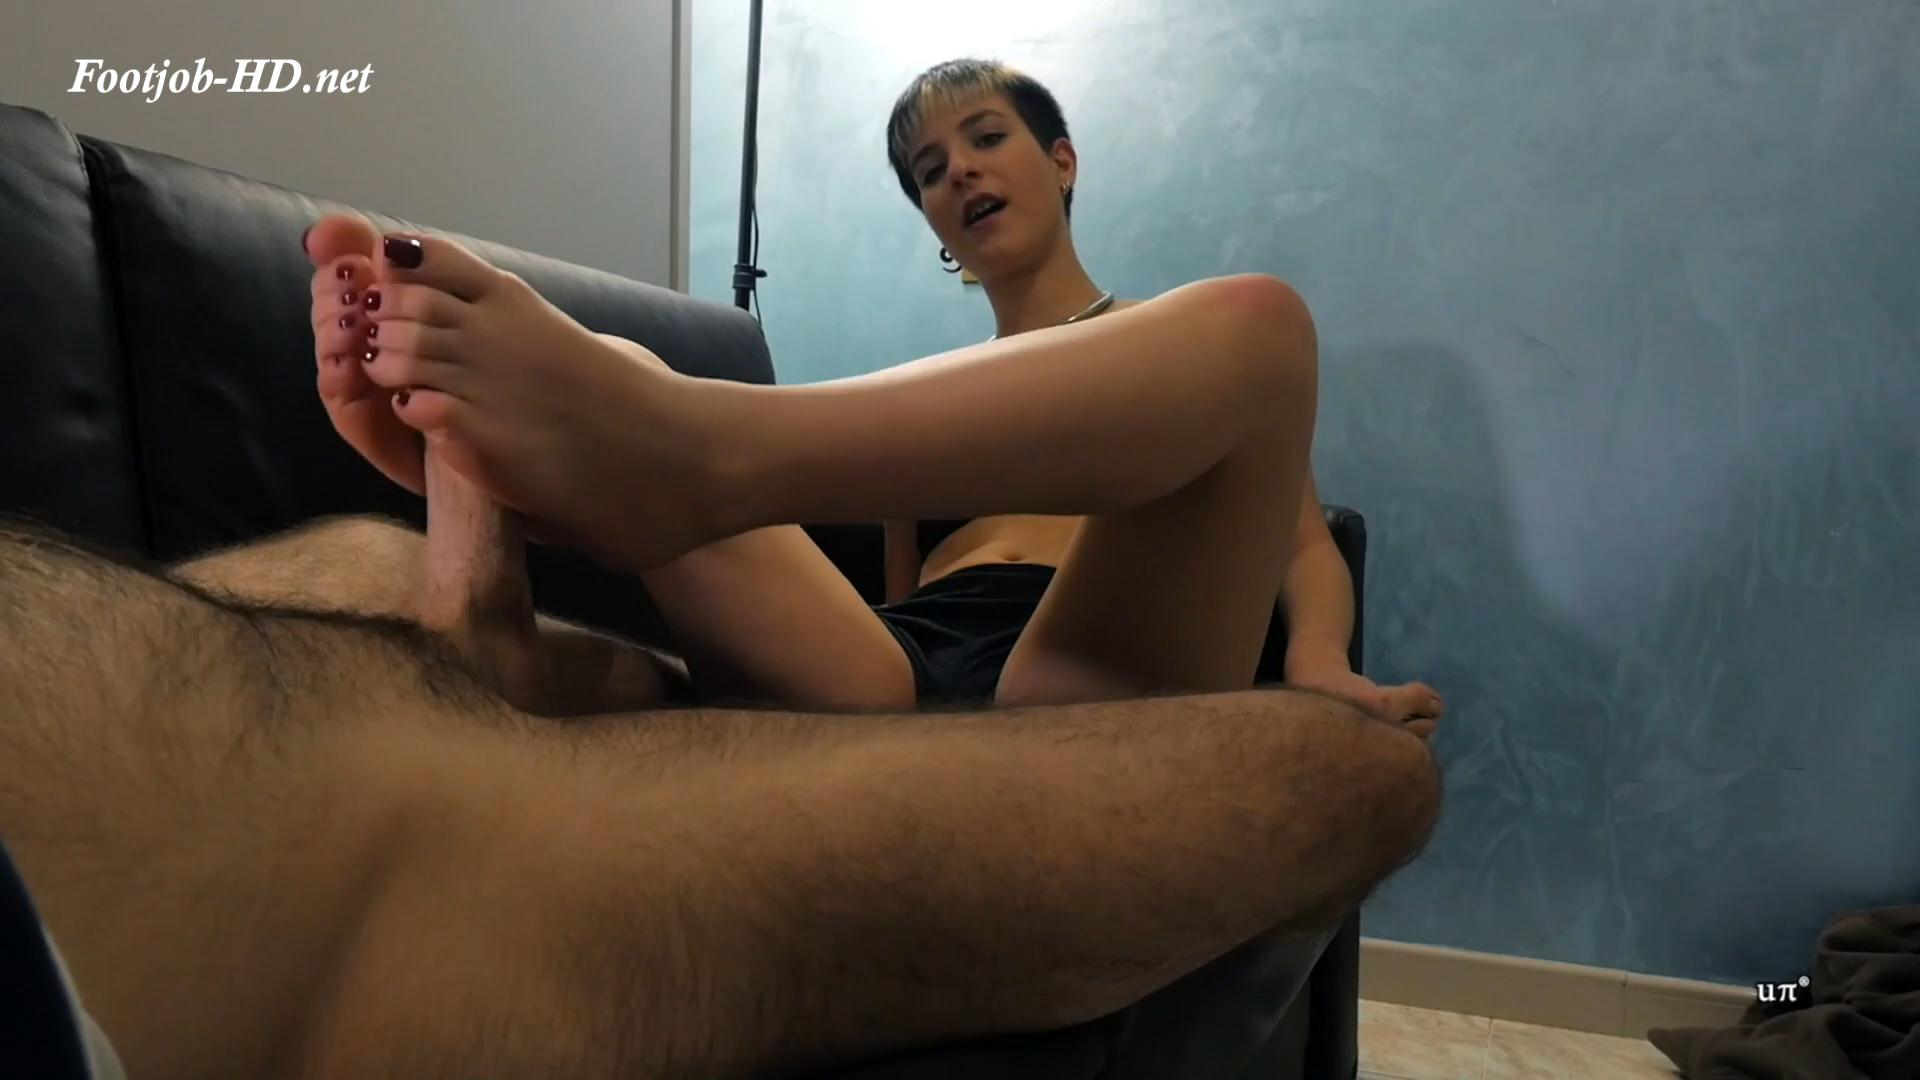 Dre hazel wants to fuck your ass femdom pov lycra strapon 10